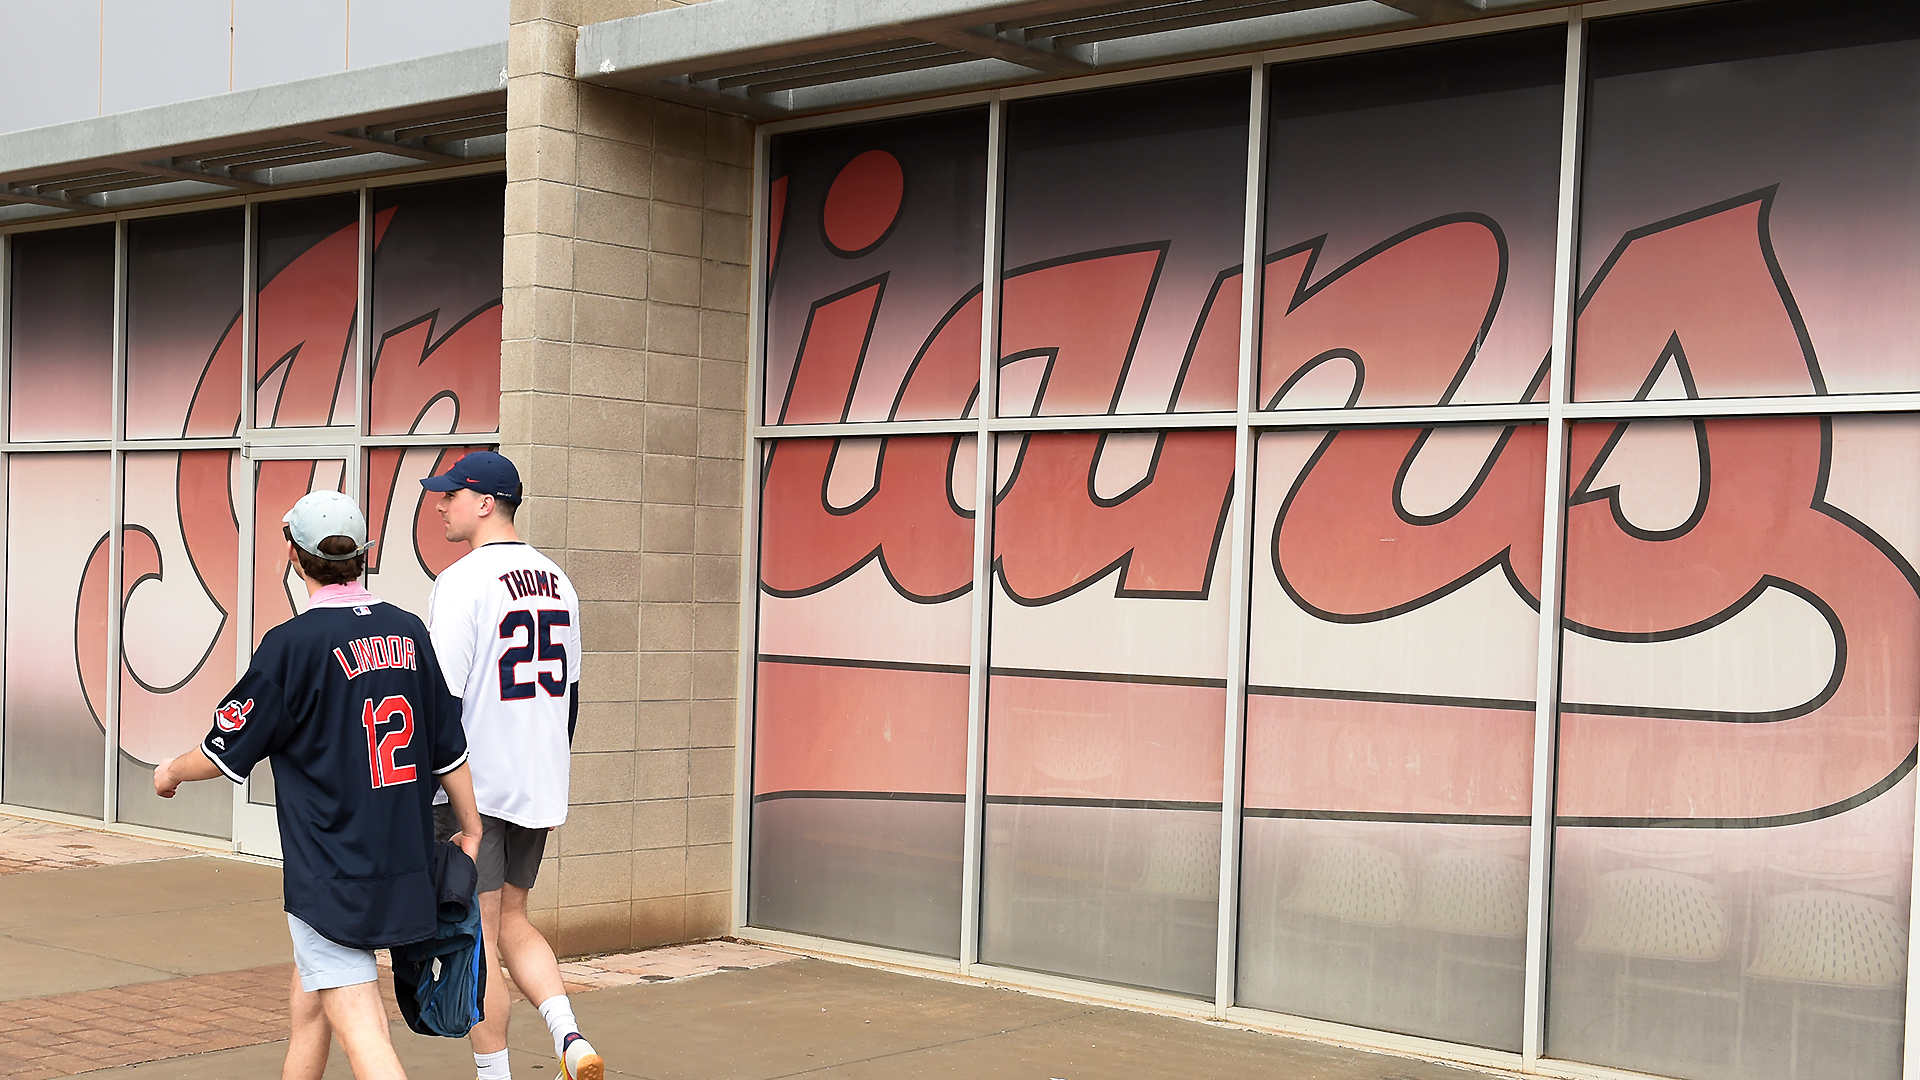 If the Cleveland Indians change their team name, here are 6 replacement options